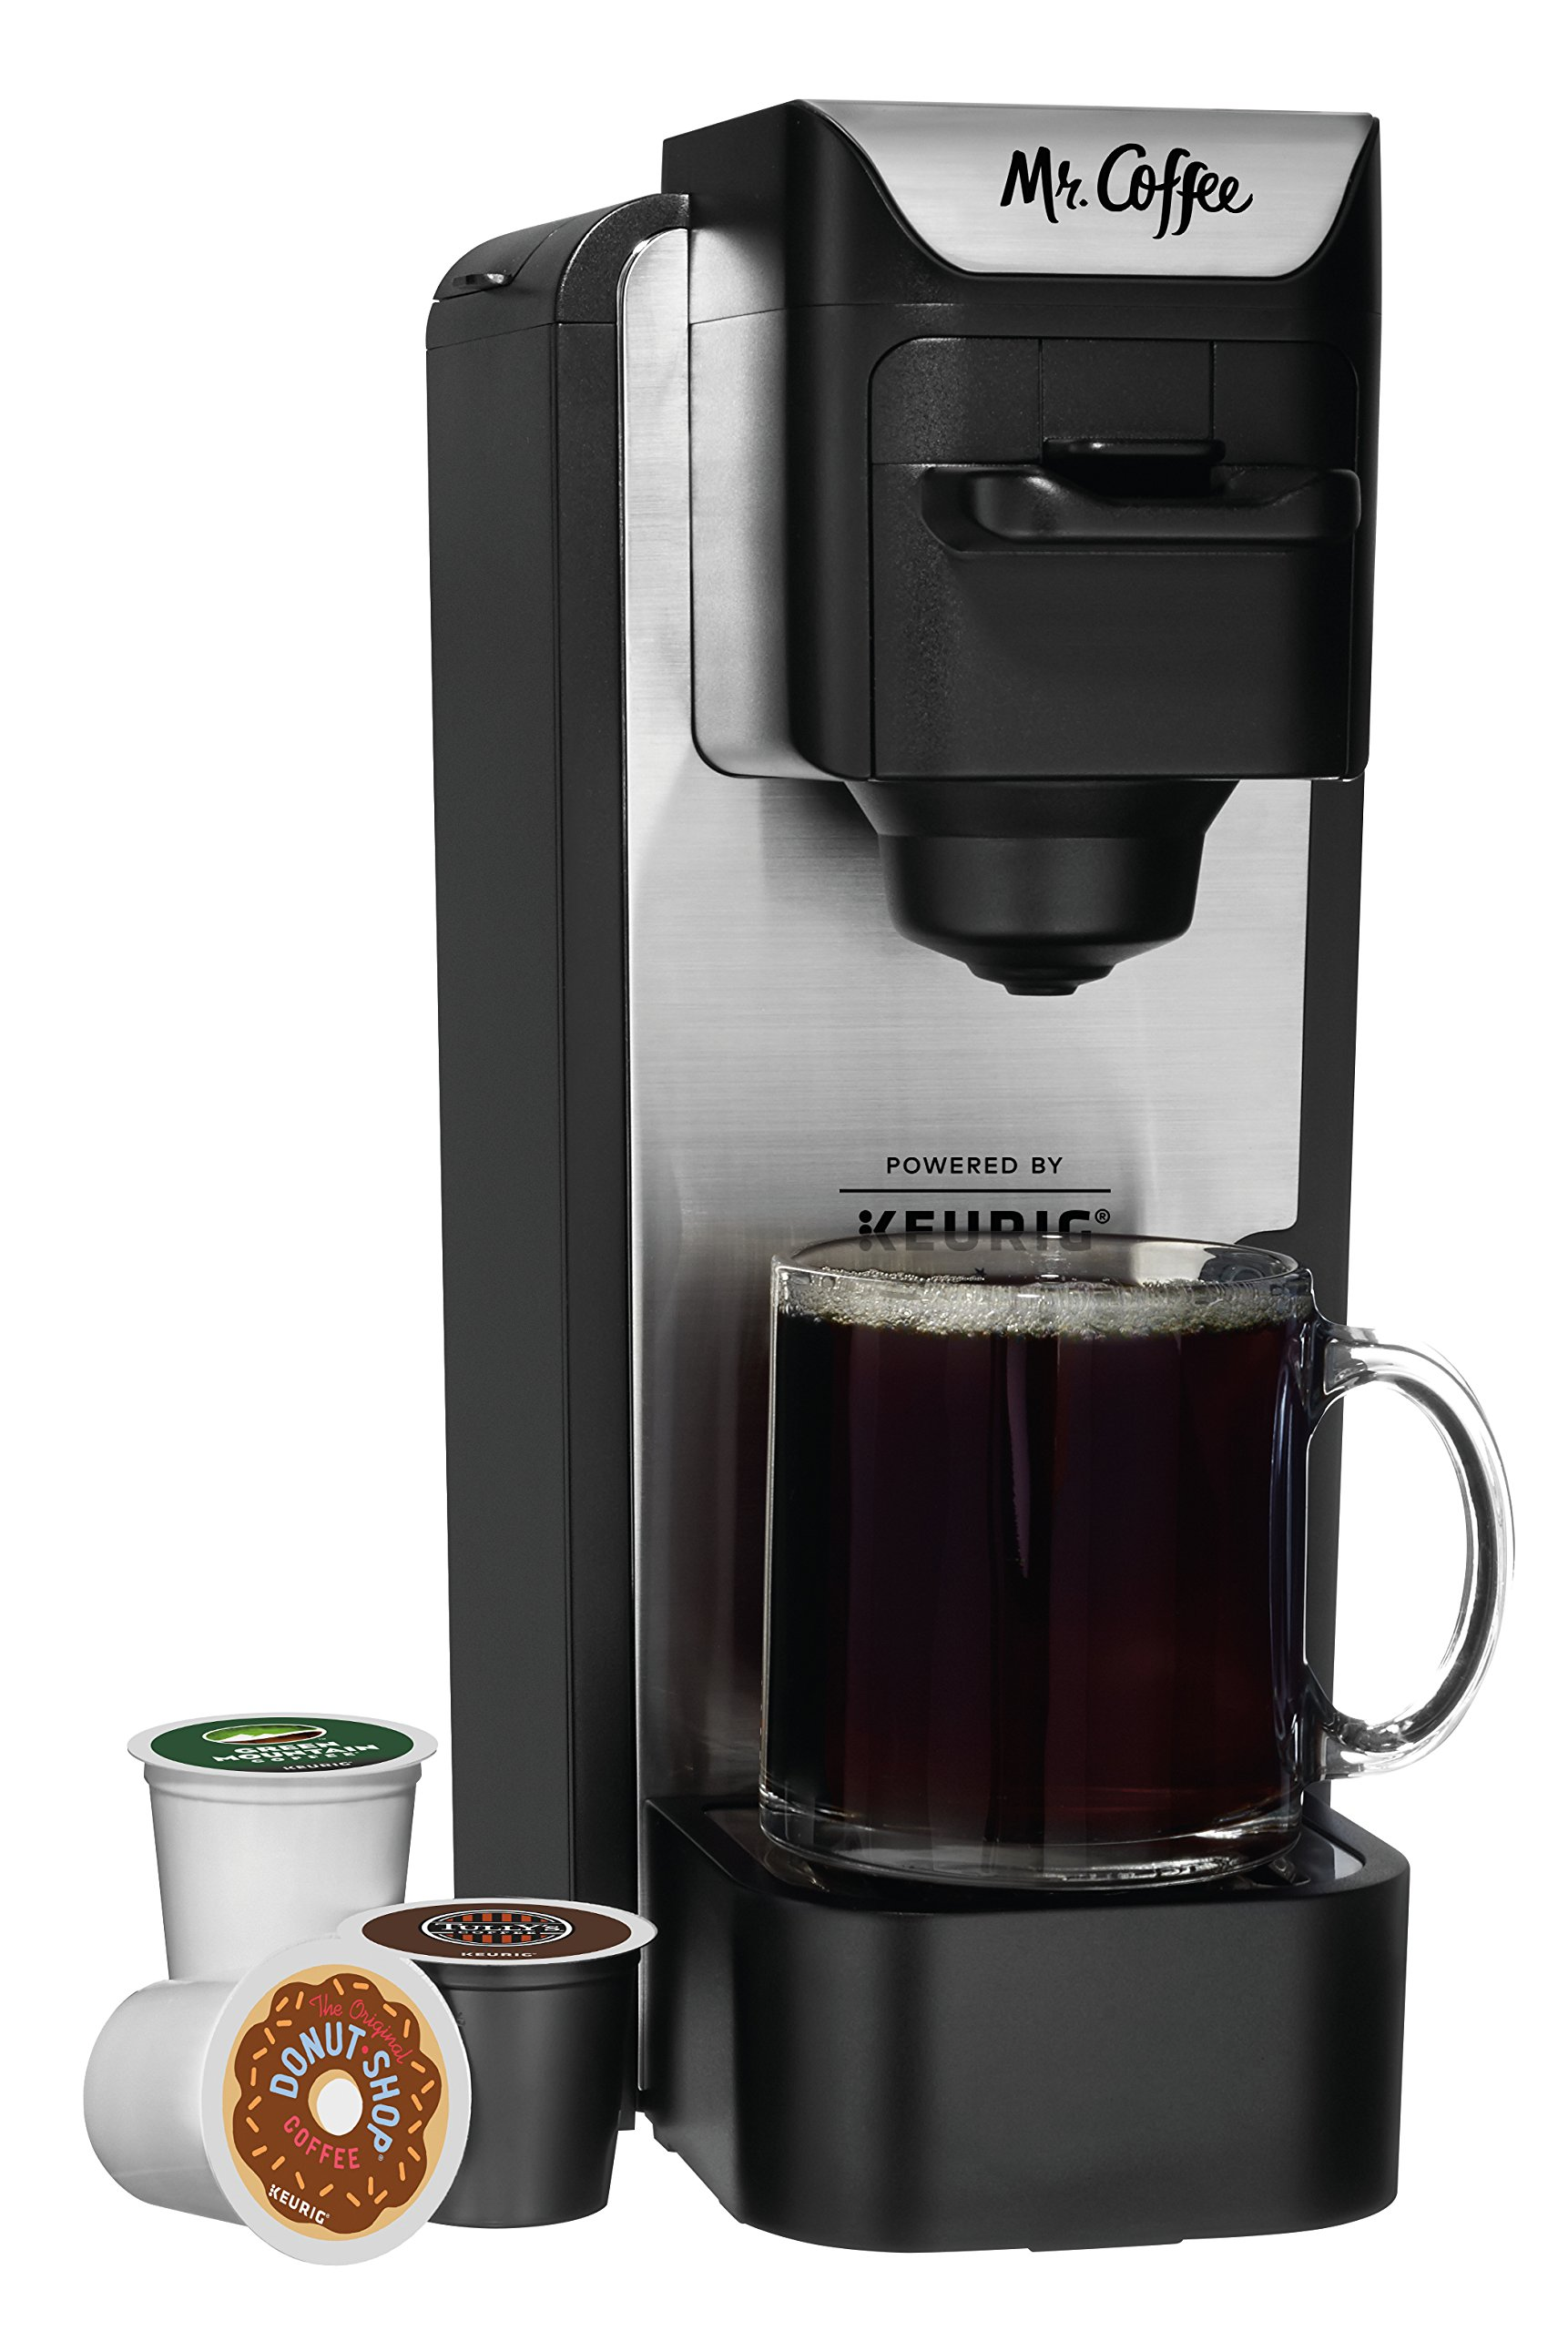 Mr. Coffee K-Cup Coffee Maker System with Reusable Grounds Filter, Silver by Mr. Coffee